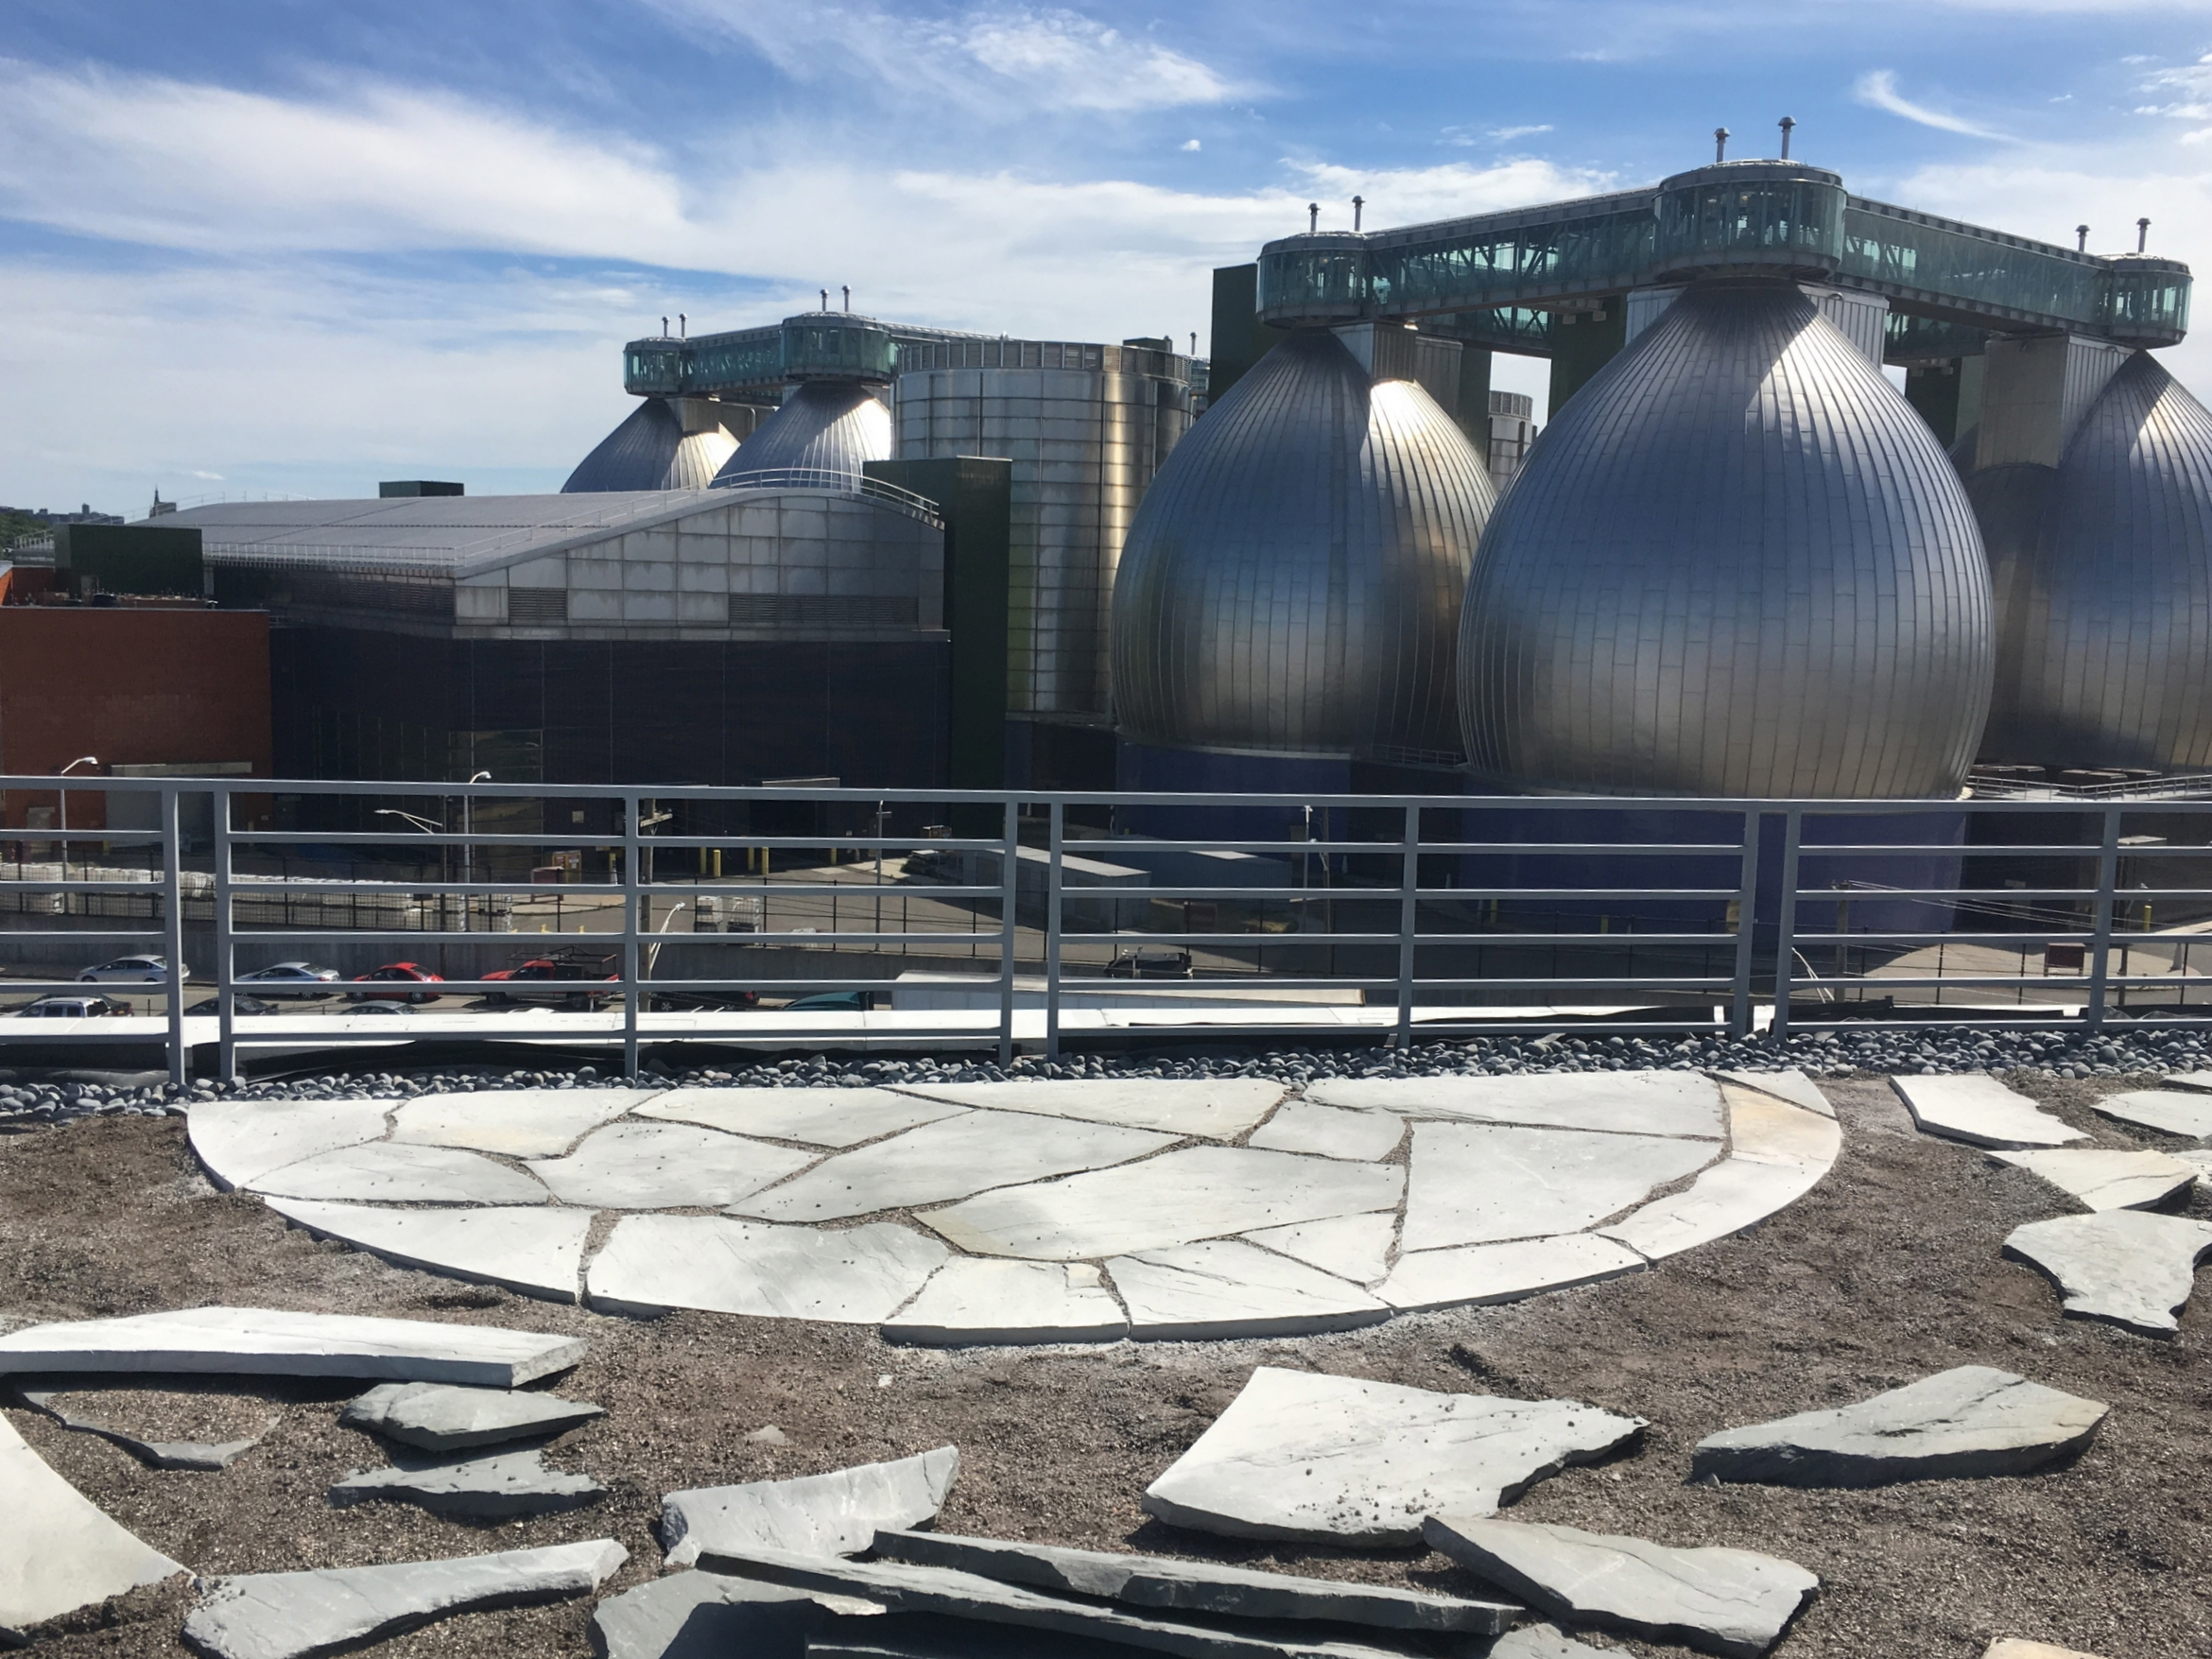 A large patio at the end of the upperdeck offers a beautiful view of the Newtown Creek Water Treatment Facility.